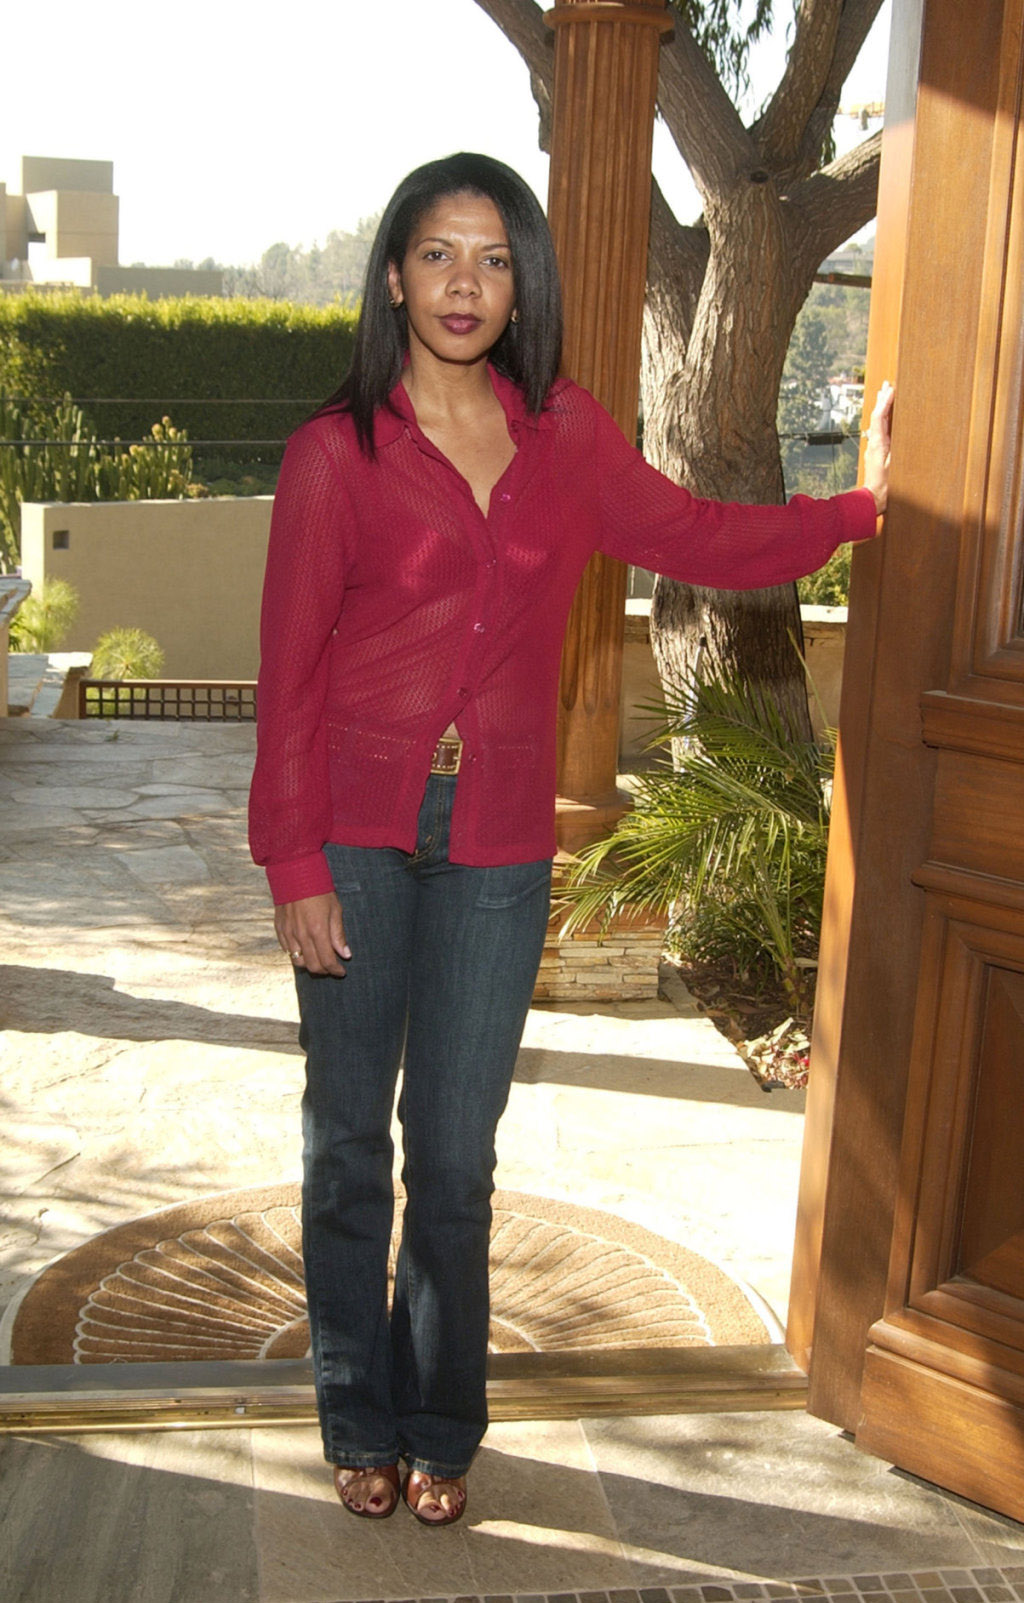 penny johnson realtorpenny johnson jerald, penny johnson, penny johnson flowers, penny johnson dirty dancing, penny johnson jerald leaving castle, penny johnson jerald twitter, penny johnson jerald imdb, penny johnson castle, penny johnson jerald biography, penny johnson facebook, penny johnson jerald castle, penny johnson jerald net worth, penny johnson florist, penny johnson jerald ncis, penny johnson government art collection, penny johnson jerald feet, penny johnson jerald measurements, penny johnson realtor, penny johnson catering, penny johnson twitter